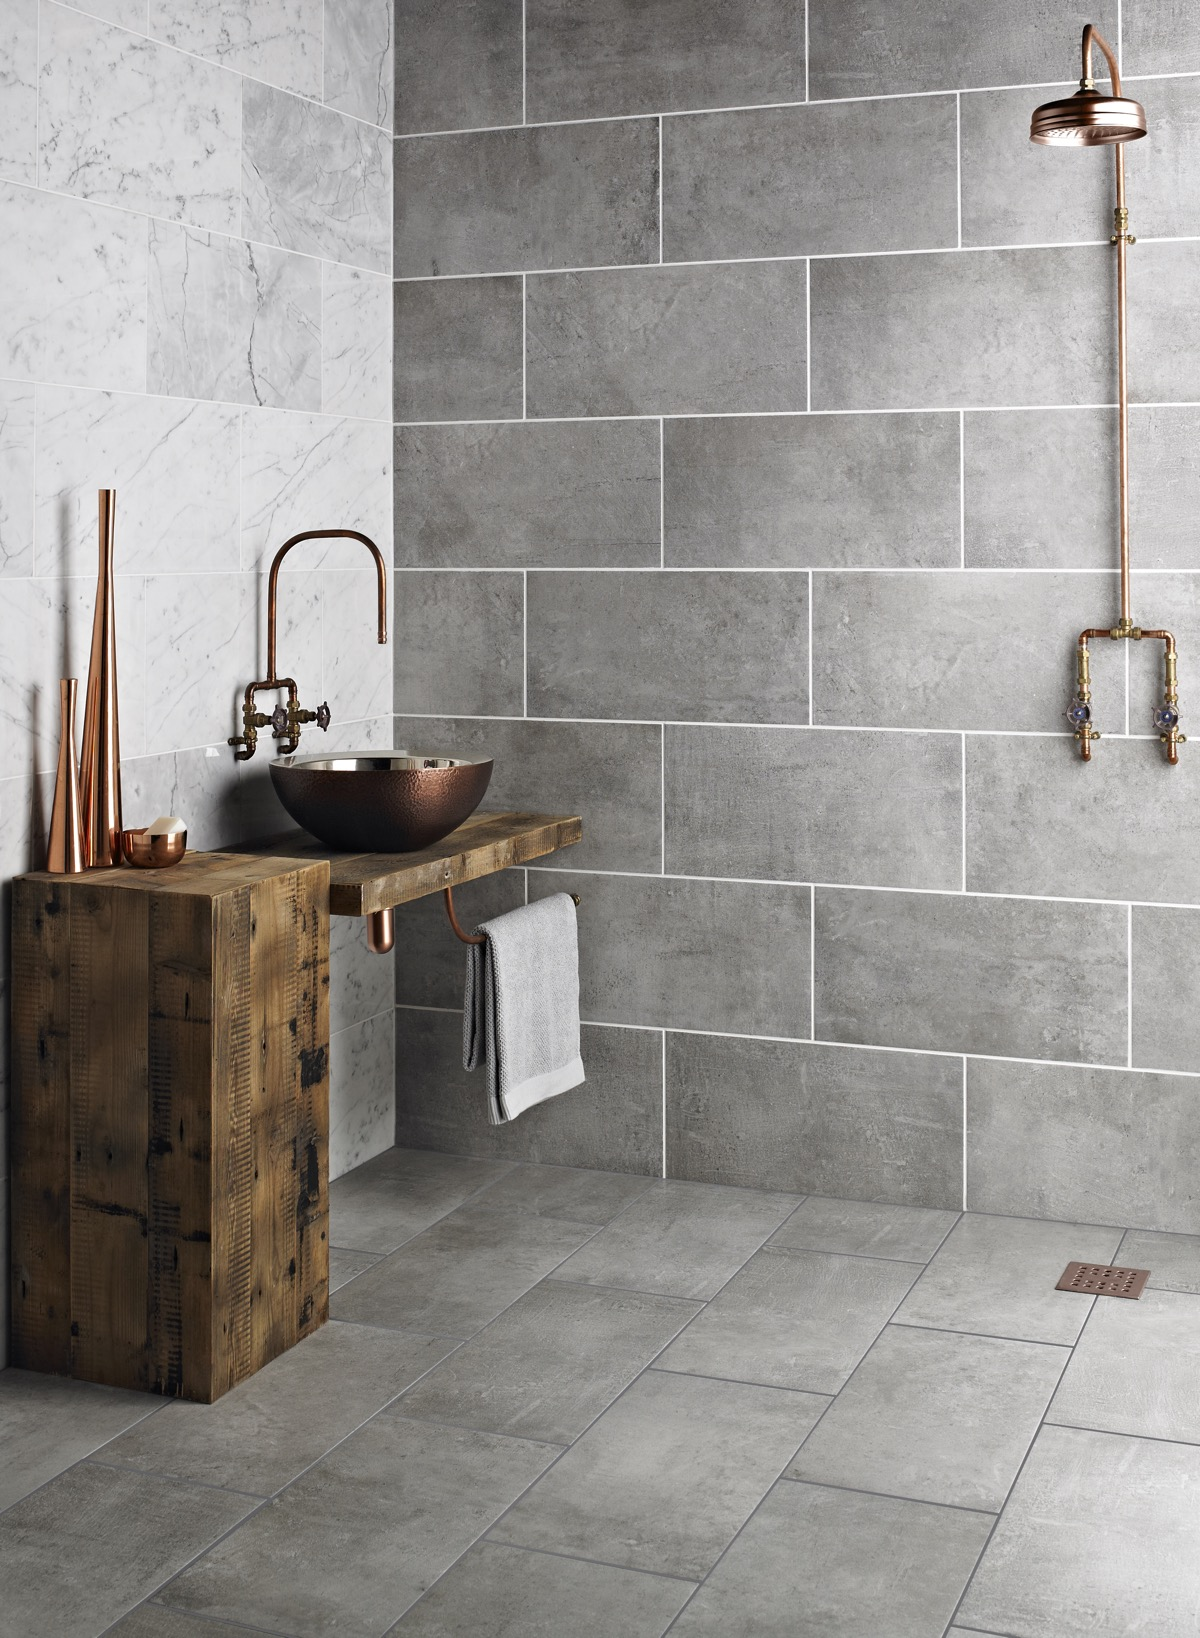 51 Industrial Style Bathrooms Plus Ideas & Accessories You Can Copy From Them images 13